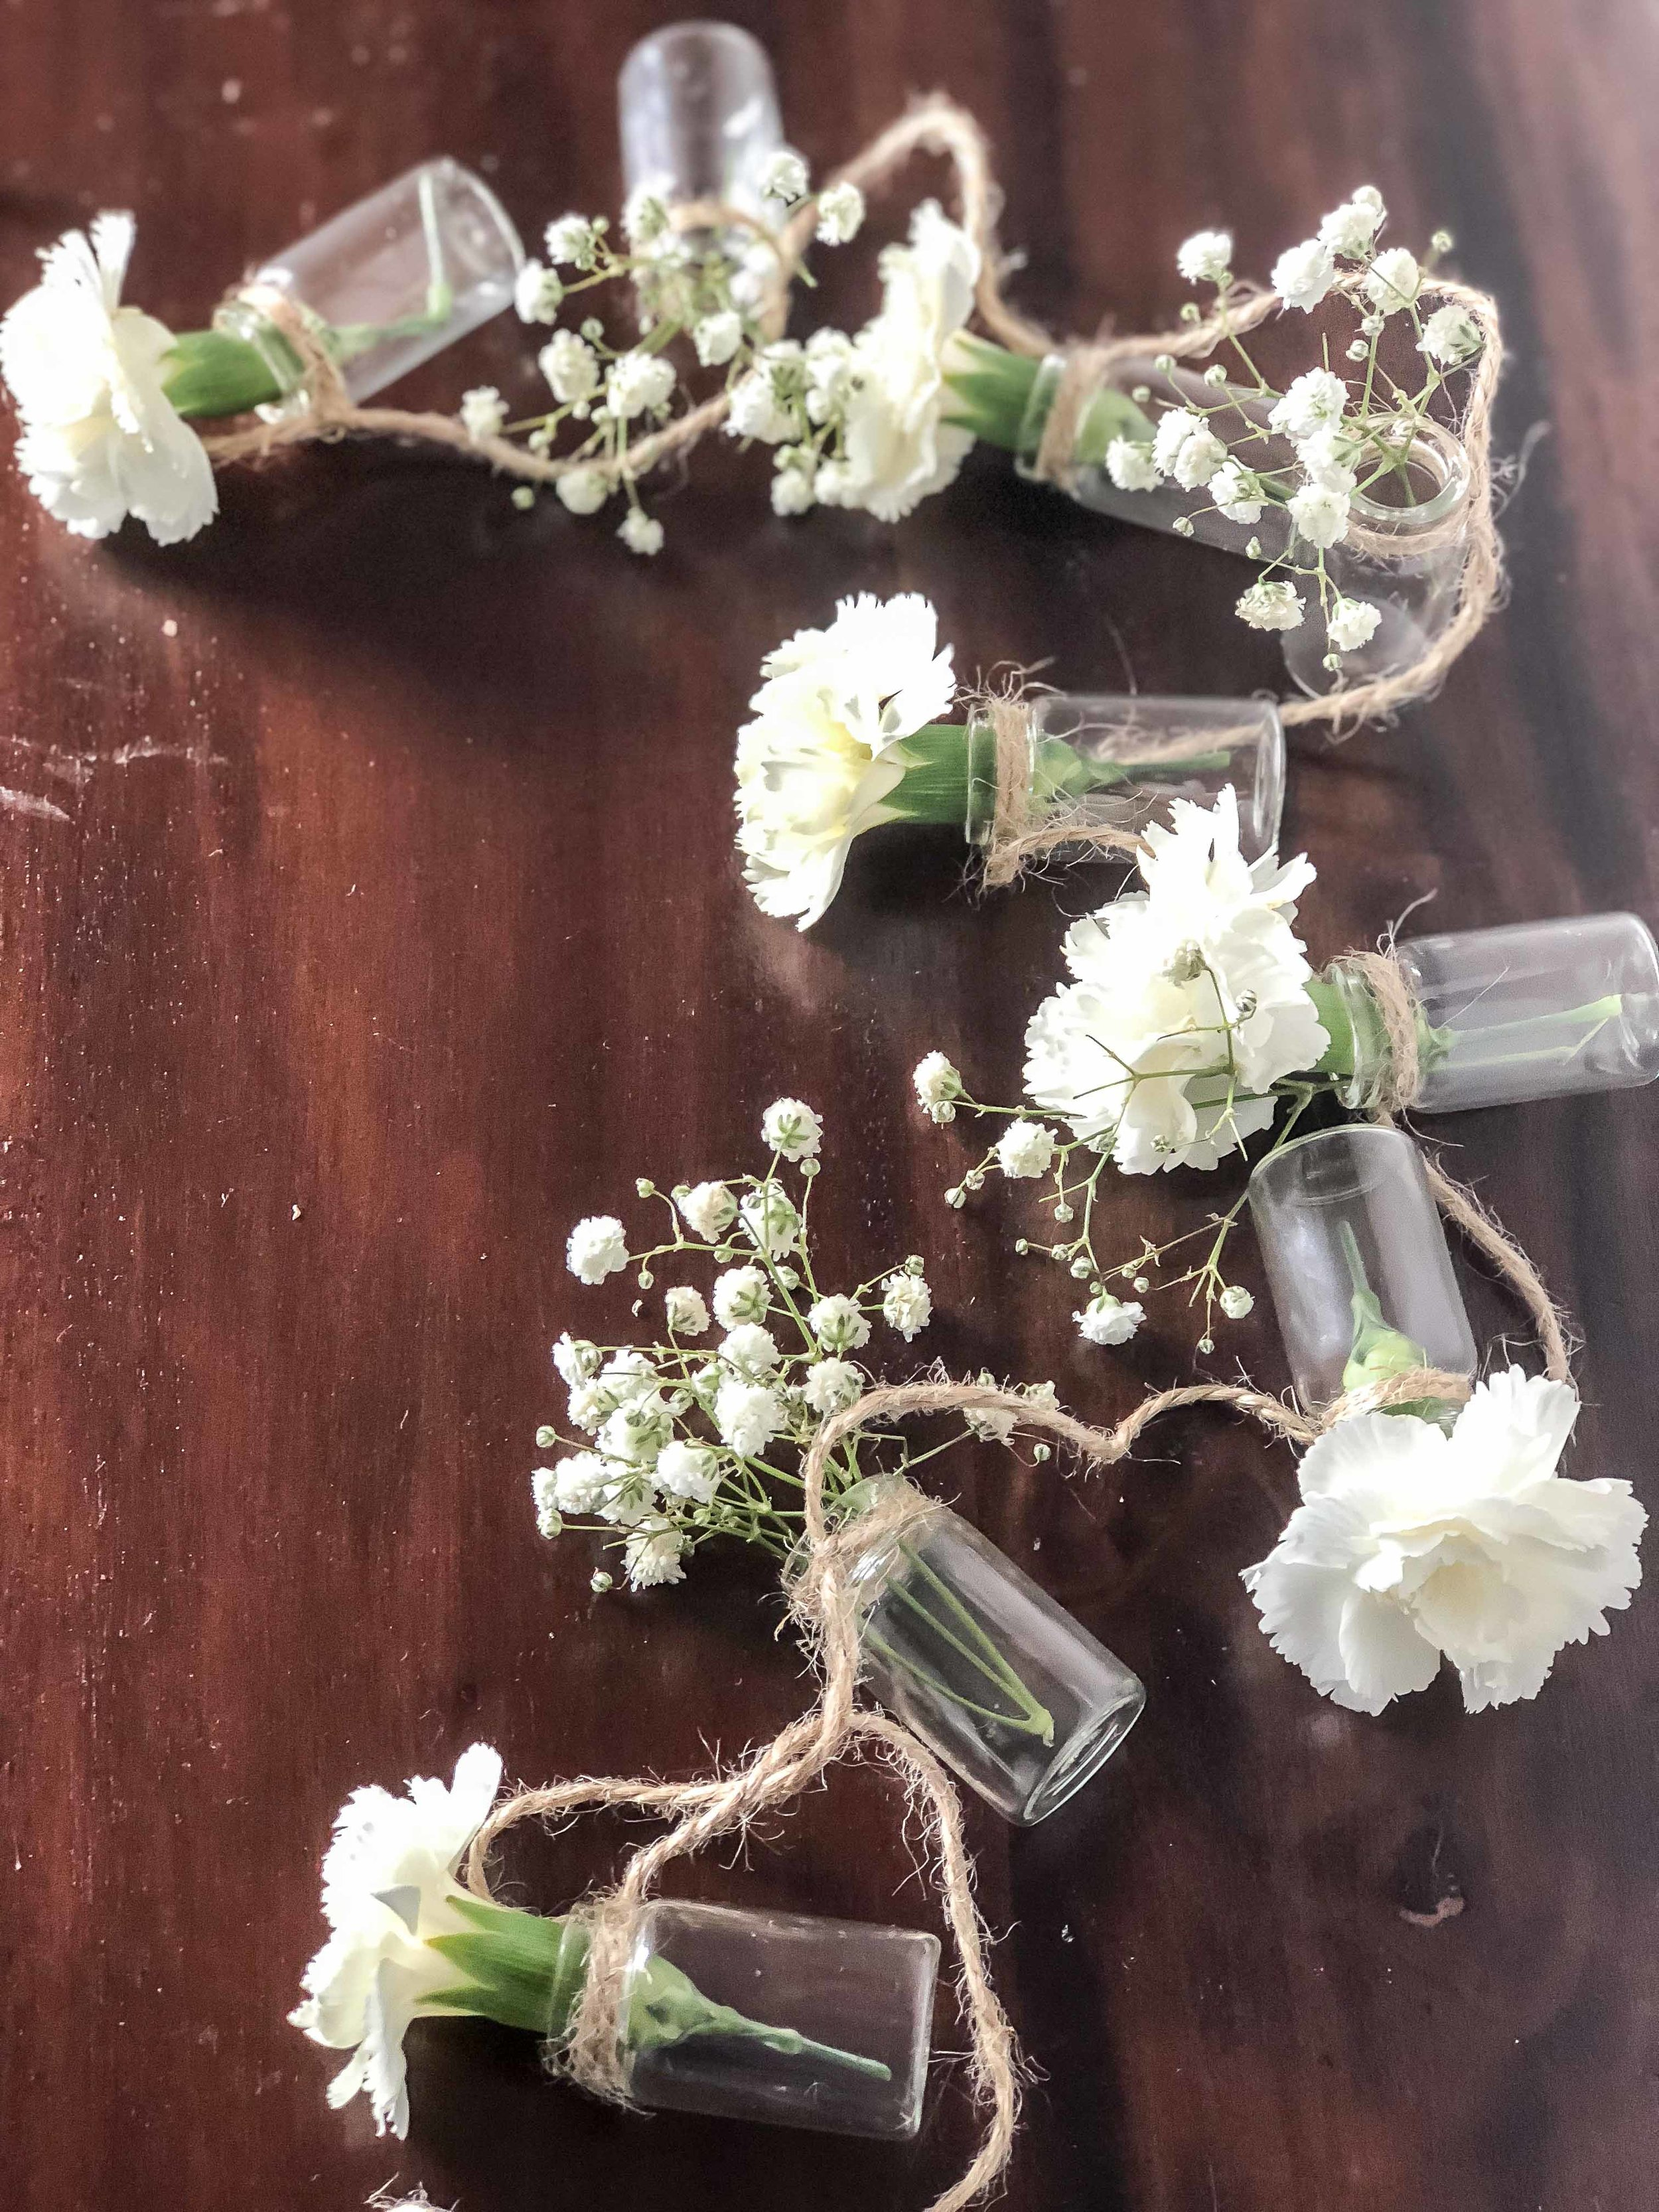 Hanging Glass Vases: $10 - Set of 3 (holding 8 vases 9 vases and 10 vases)